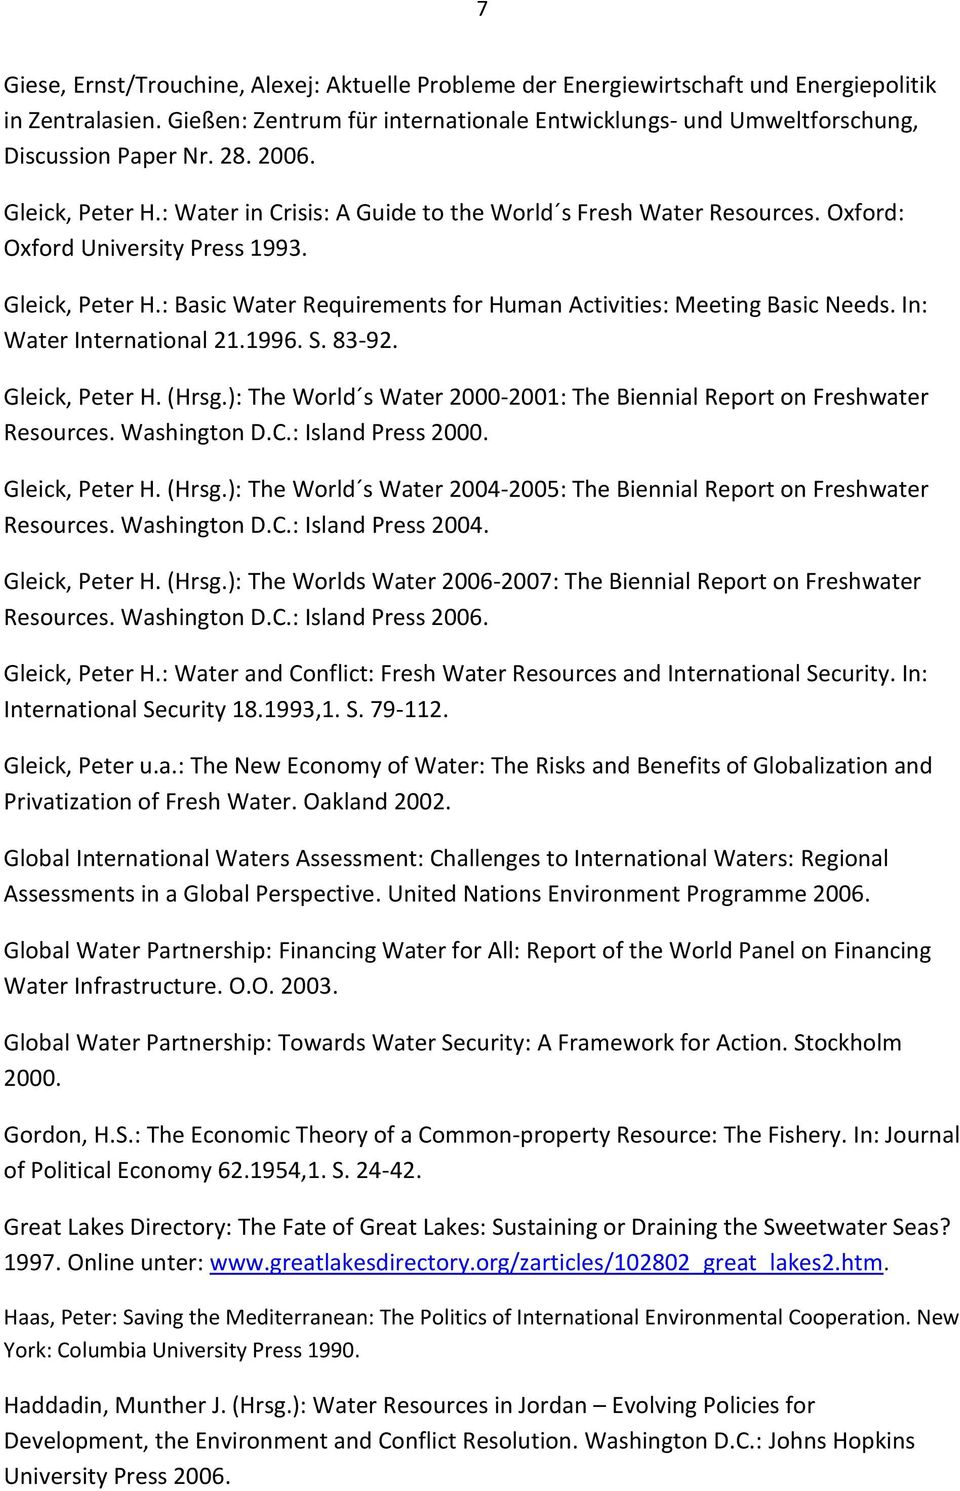 In: Water International 21.1996. S. 83-92. Gleick, Peter H. (Hrsg.): The World s Water 2000-2001: The Biennial Report on Freshwater Resources. Washington D.C.: Island Press 2000. Gleick, Peter H. (Hrsg.): The World s Water 2004-2005: The Biennial Report on Freshwater Resources.